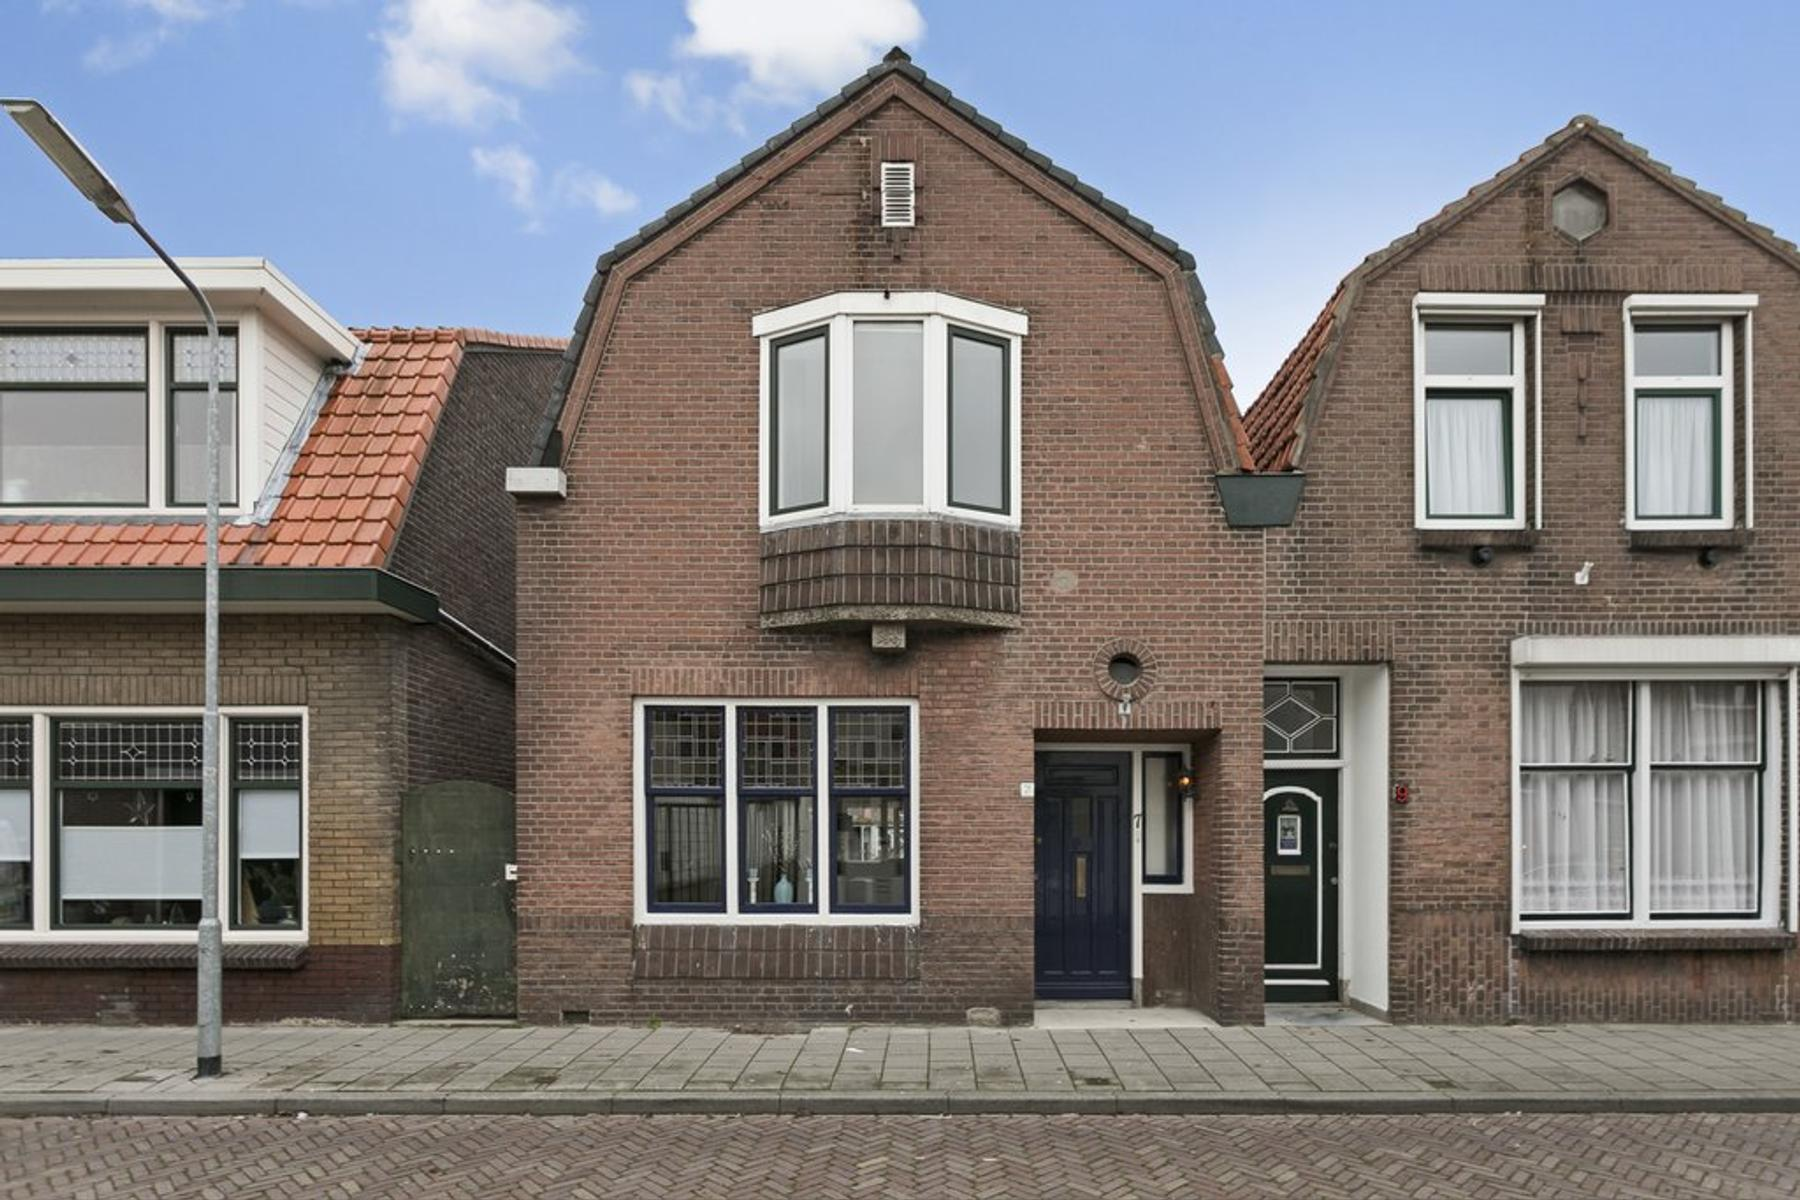 Beciusstraat 7 in Oost-Souburg 4388 BB